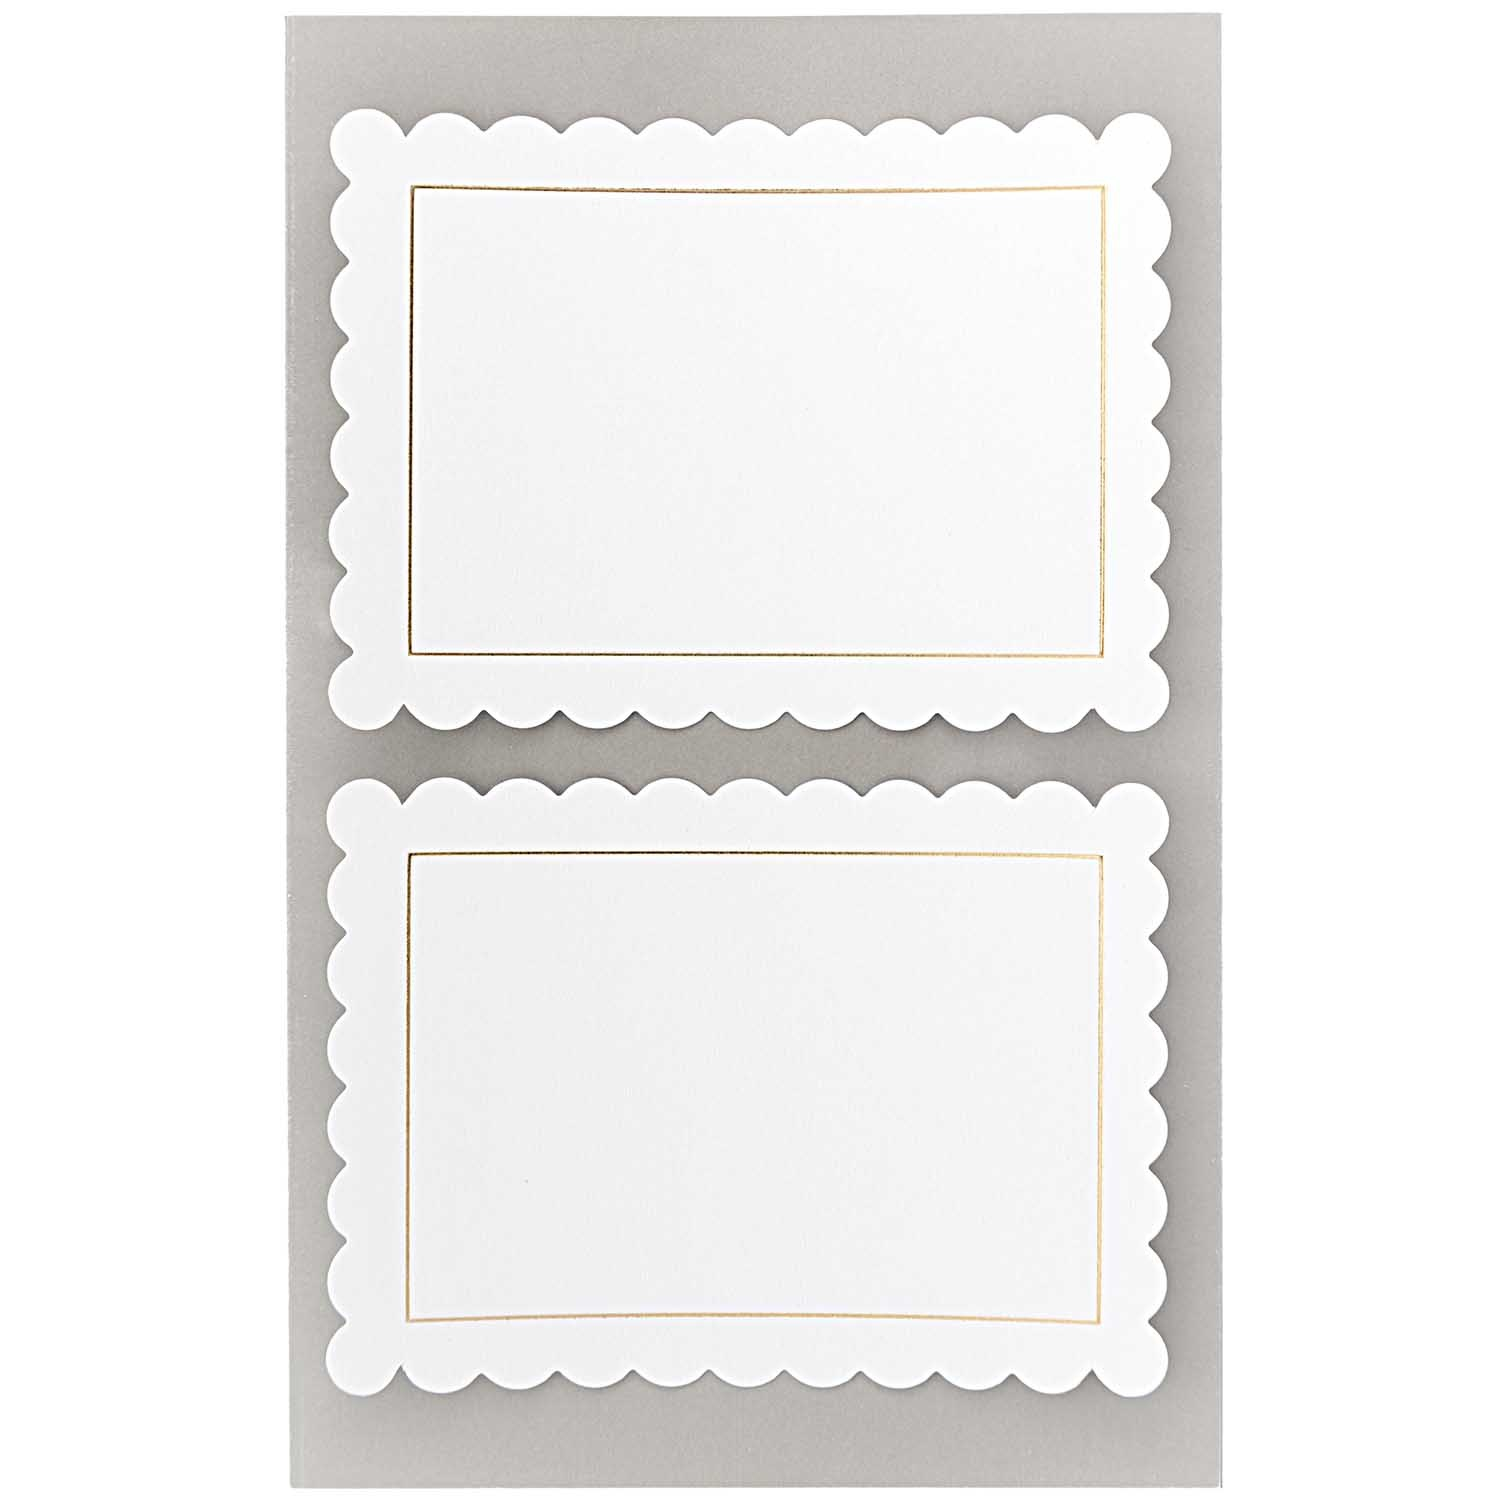 Rico NAY OFFICE STICKER, WHITE LABELS ROSETTE 4 SHEETS, 9,5 X 19 CM